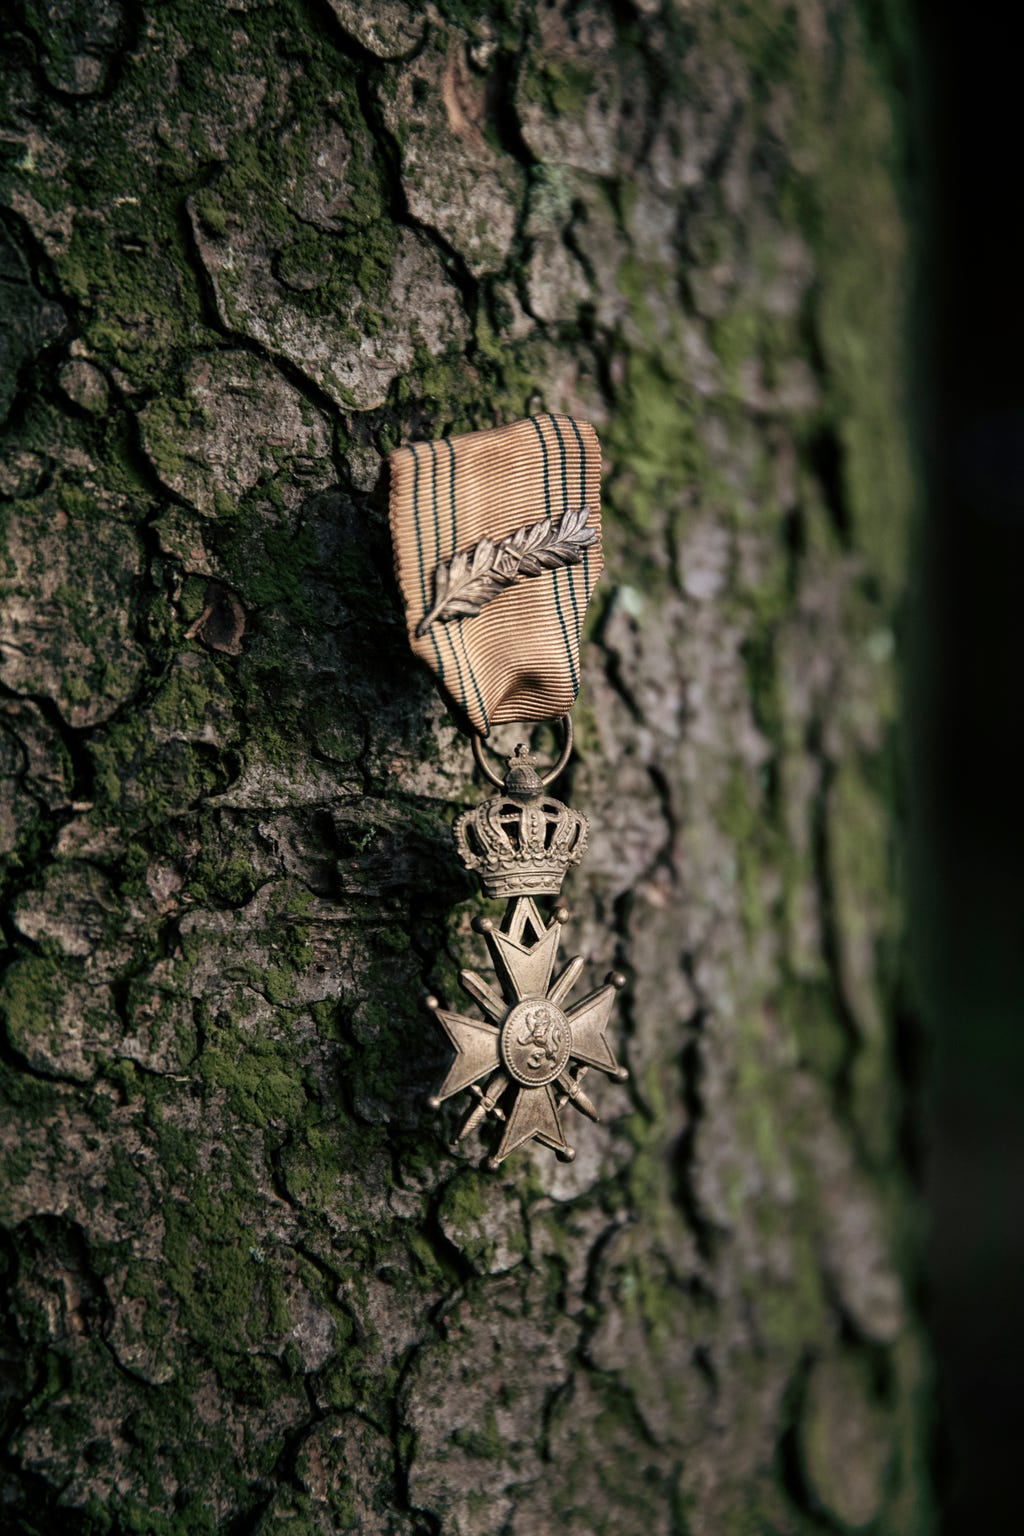 WWII U.S. Army 1st Sgt. Raymond McDonogh's Cross De Guerre medal hangs from a tree in Belgium's Ardennes Forest. The medal is a high honor given by the French government.